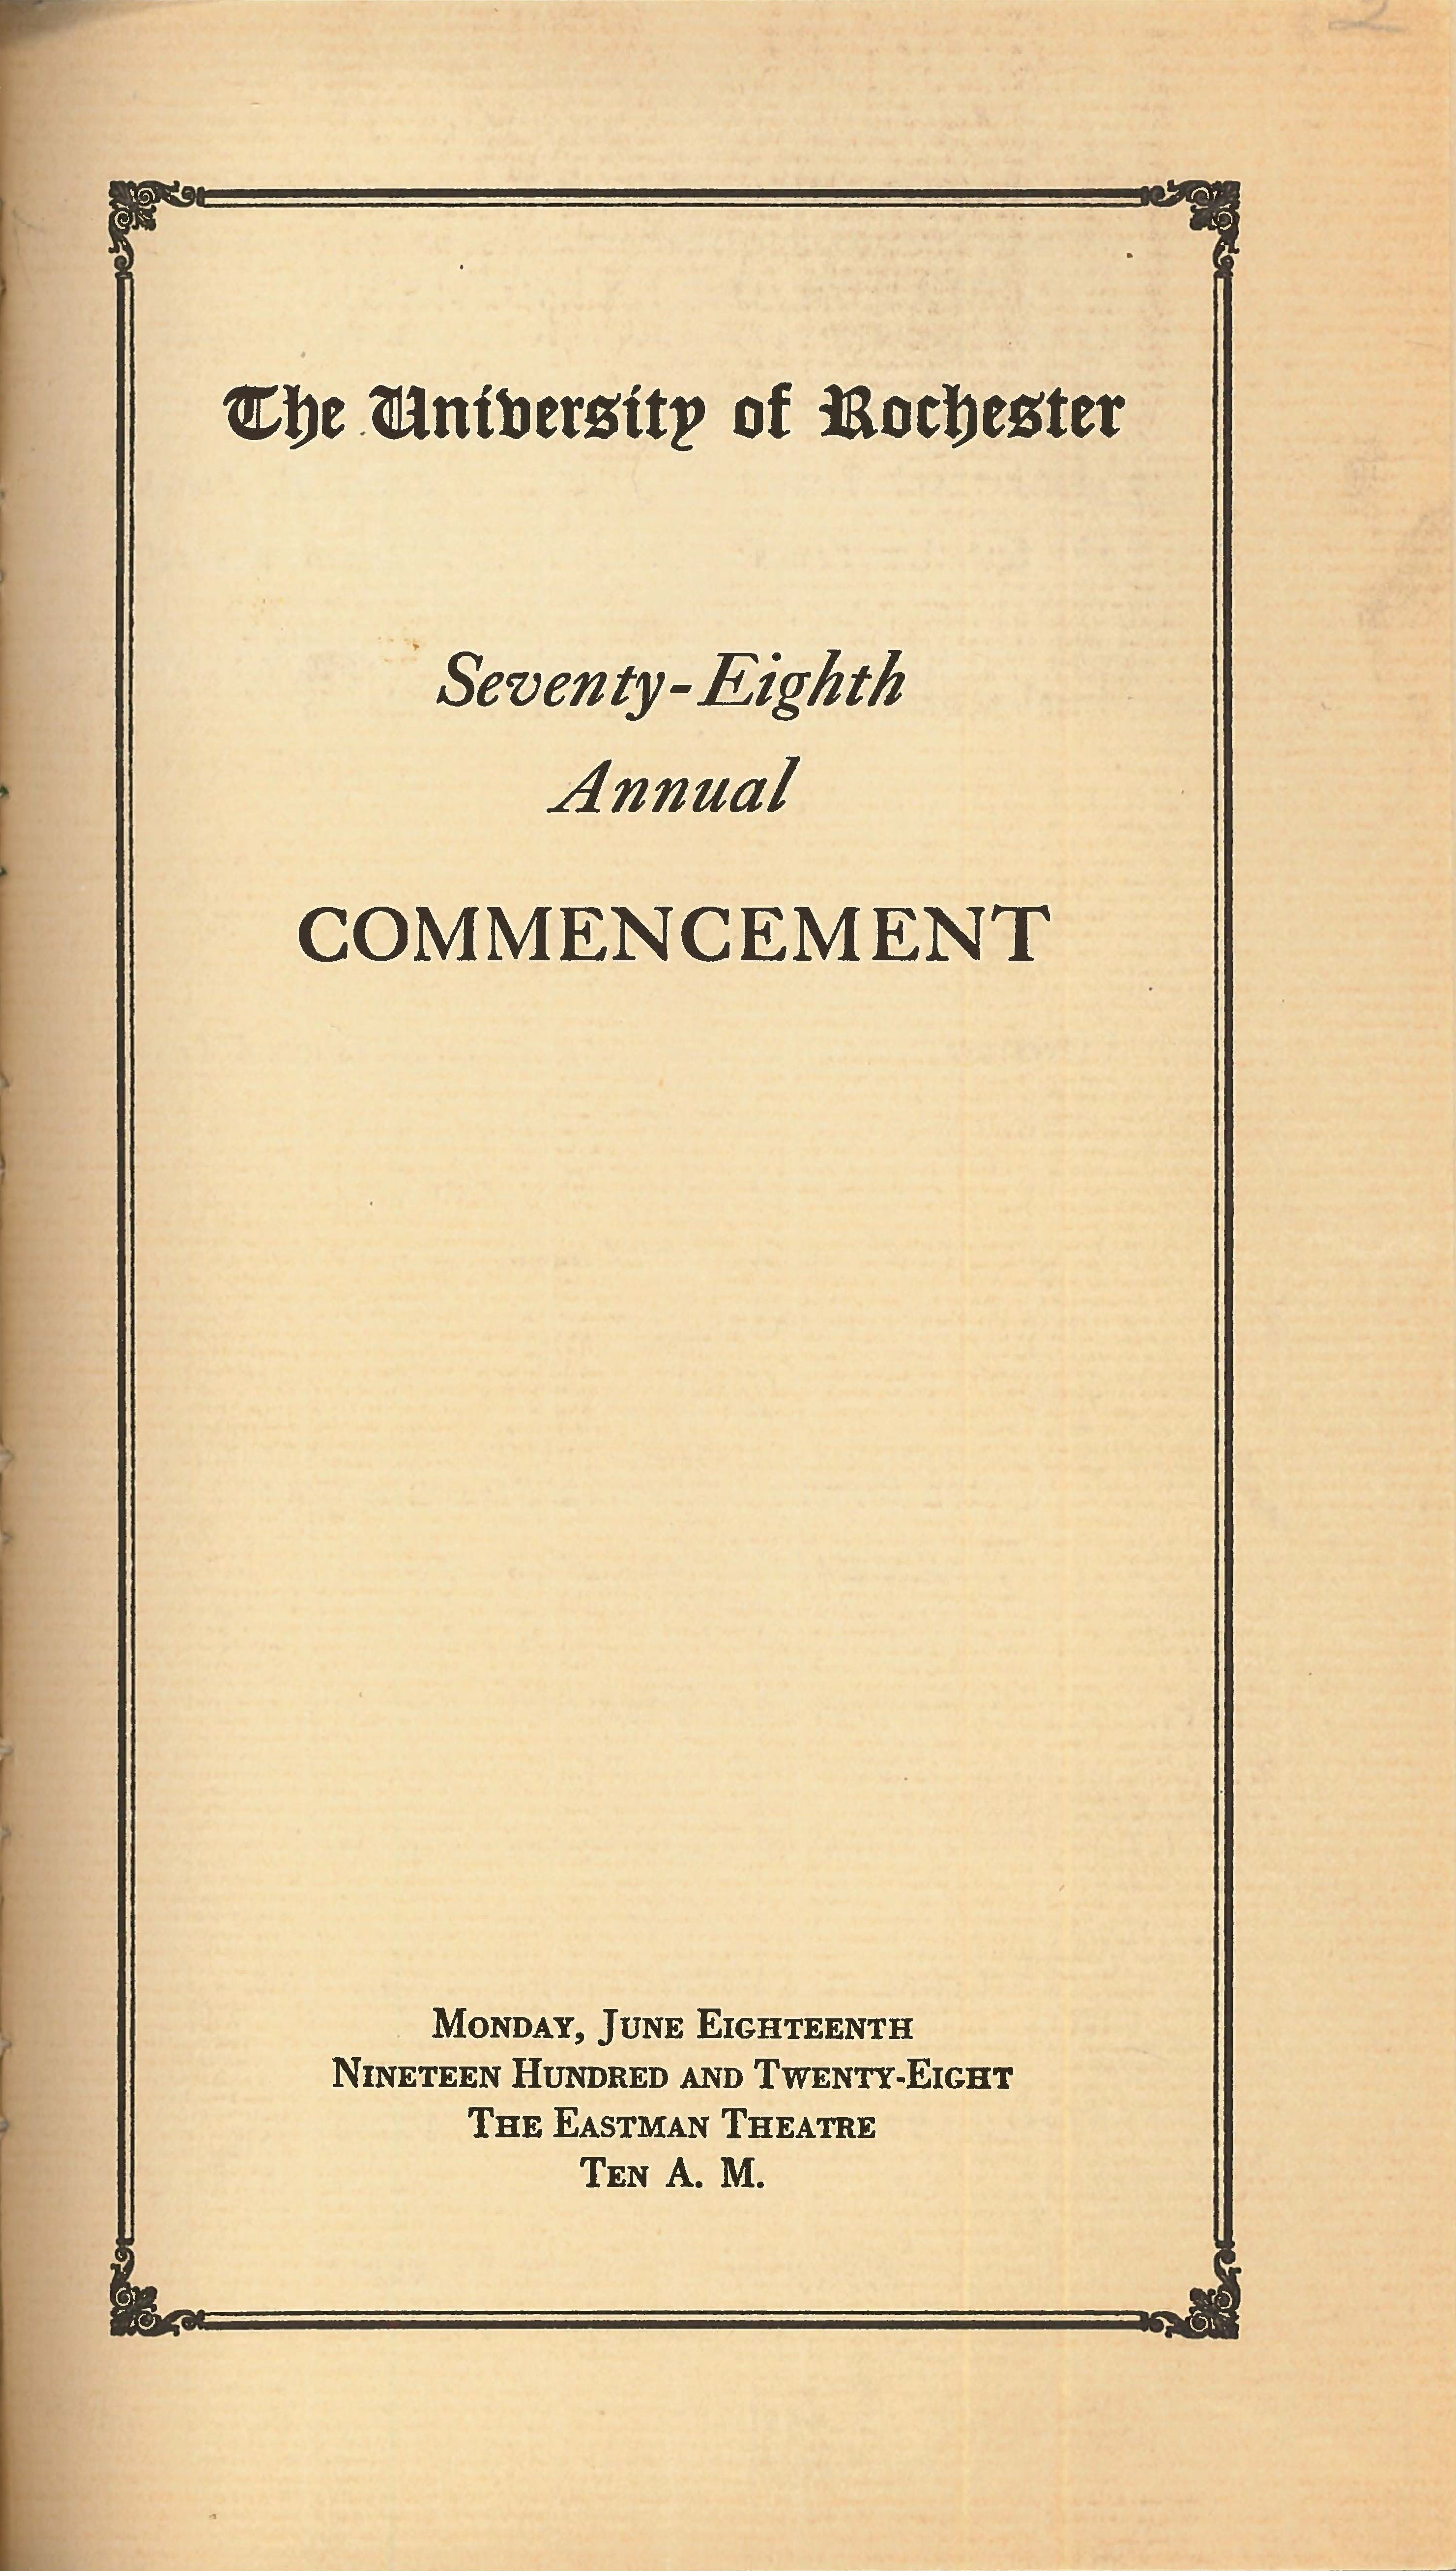 Commencement program, 1928